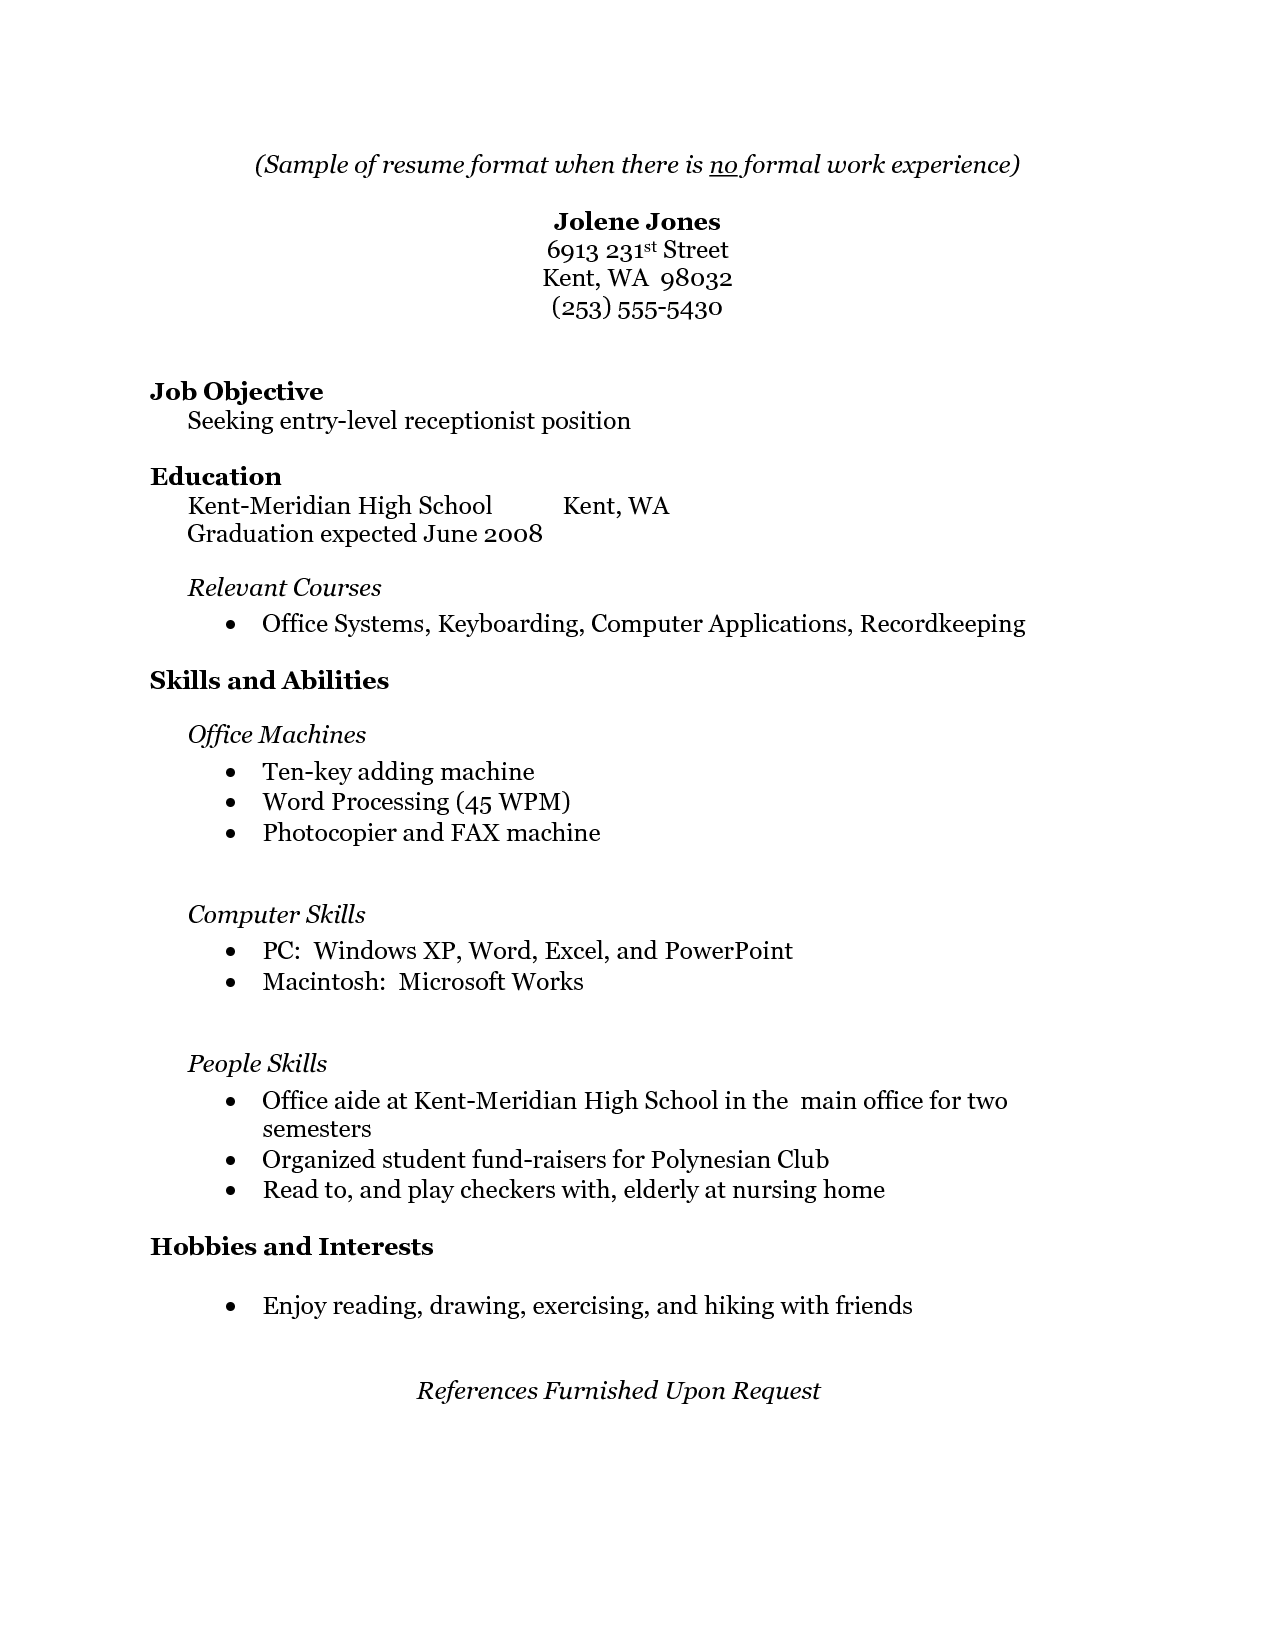 Resume Examples With No Job Experience 1 Resume Examples